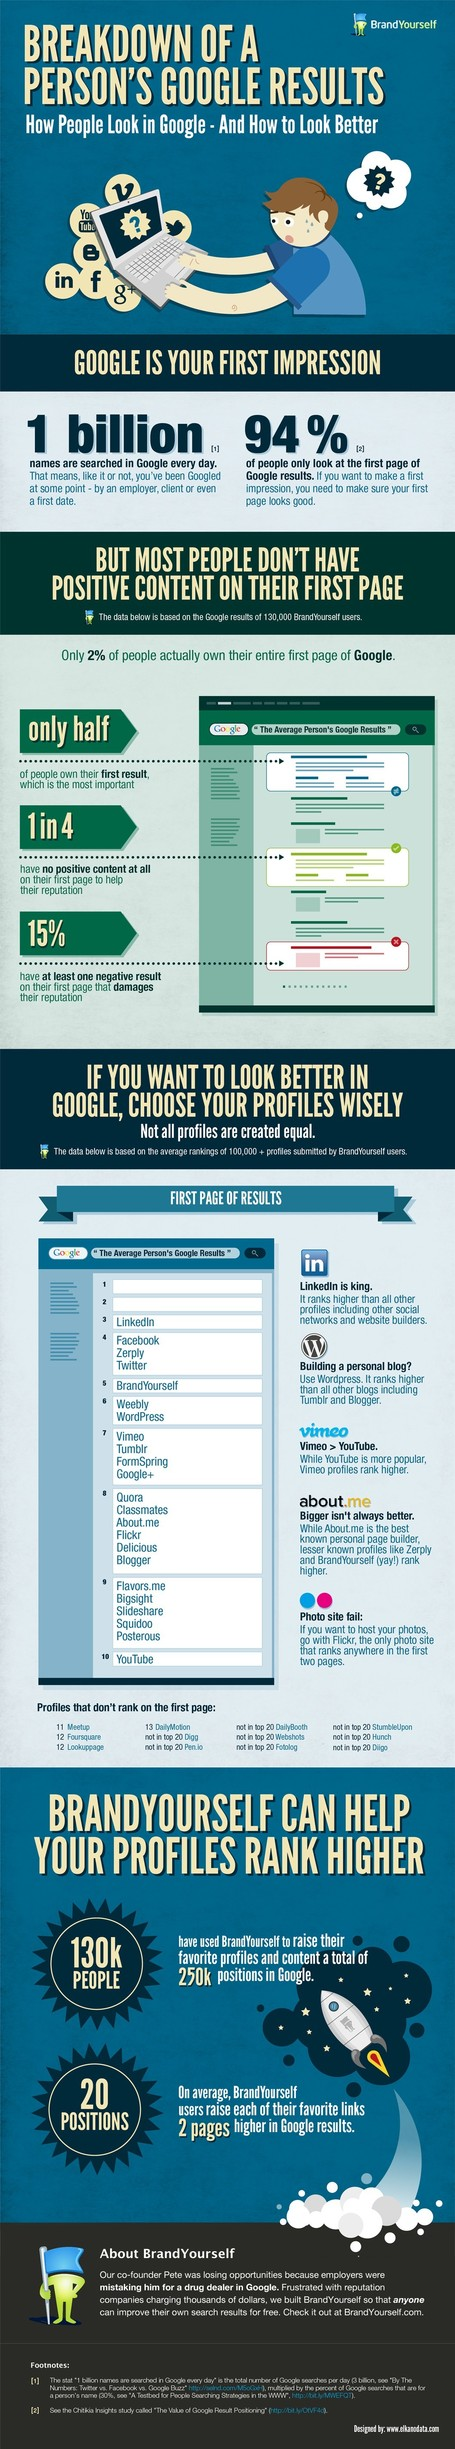 How to Use Social Media in Ranking up your Name Higher in Search Engine [Infographic] | A New Society, a new education! | Scoop.it